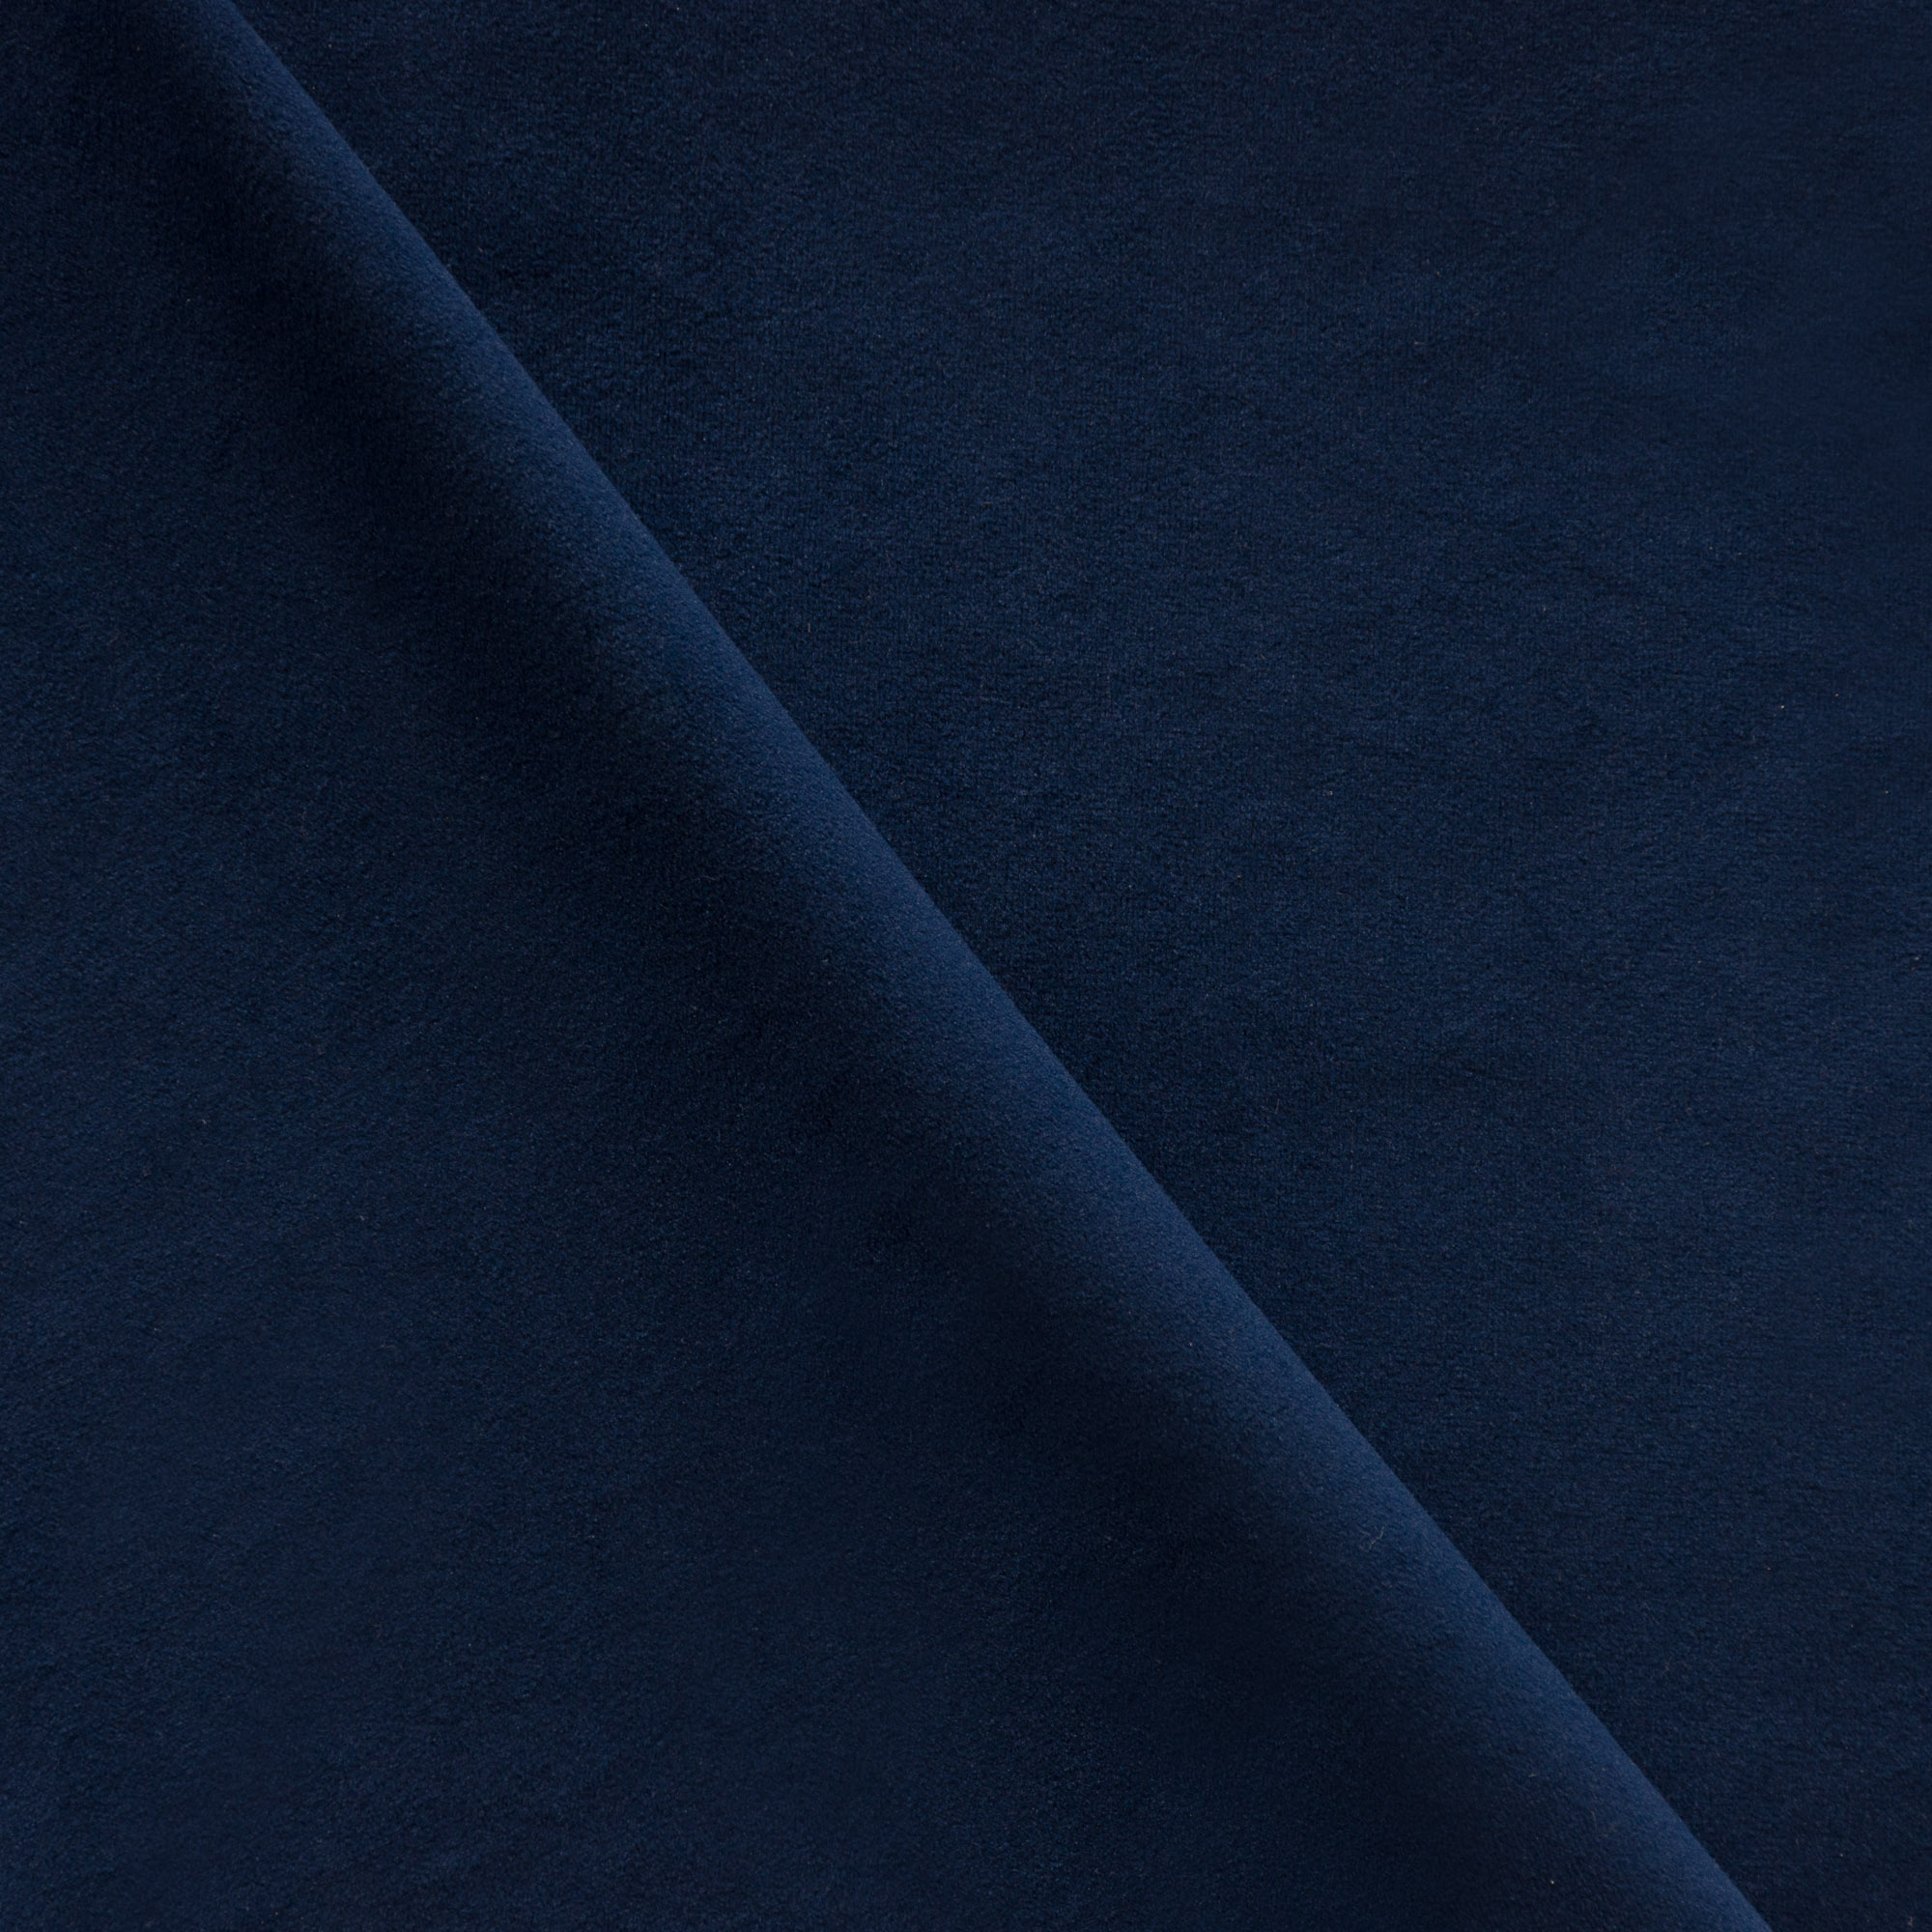 "ROYAL SAMODE VELVET INDIGO FABRIC SWATCH 6"" x 6"""